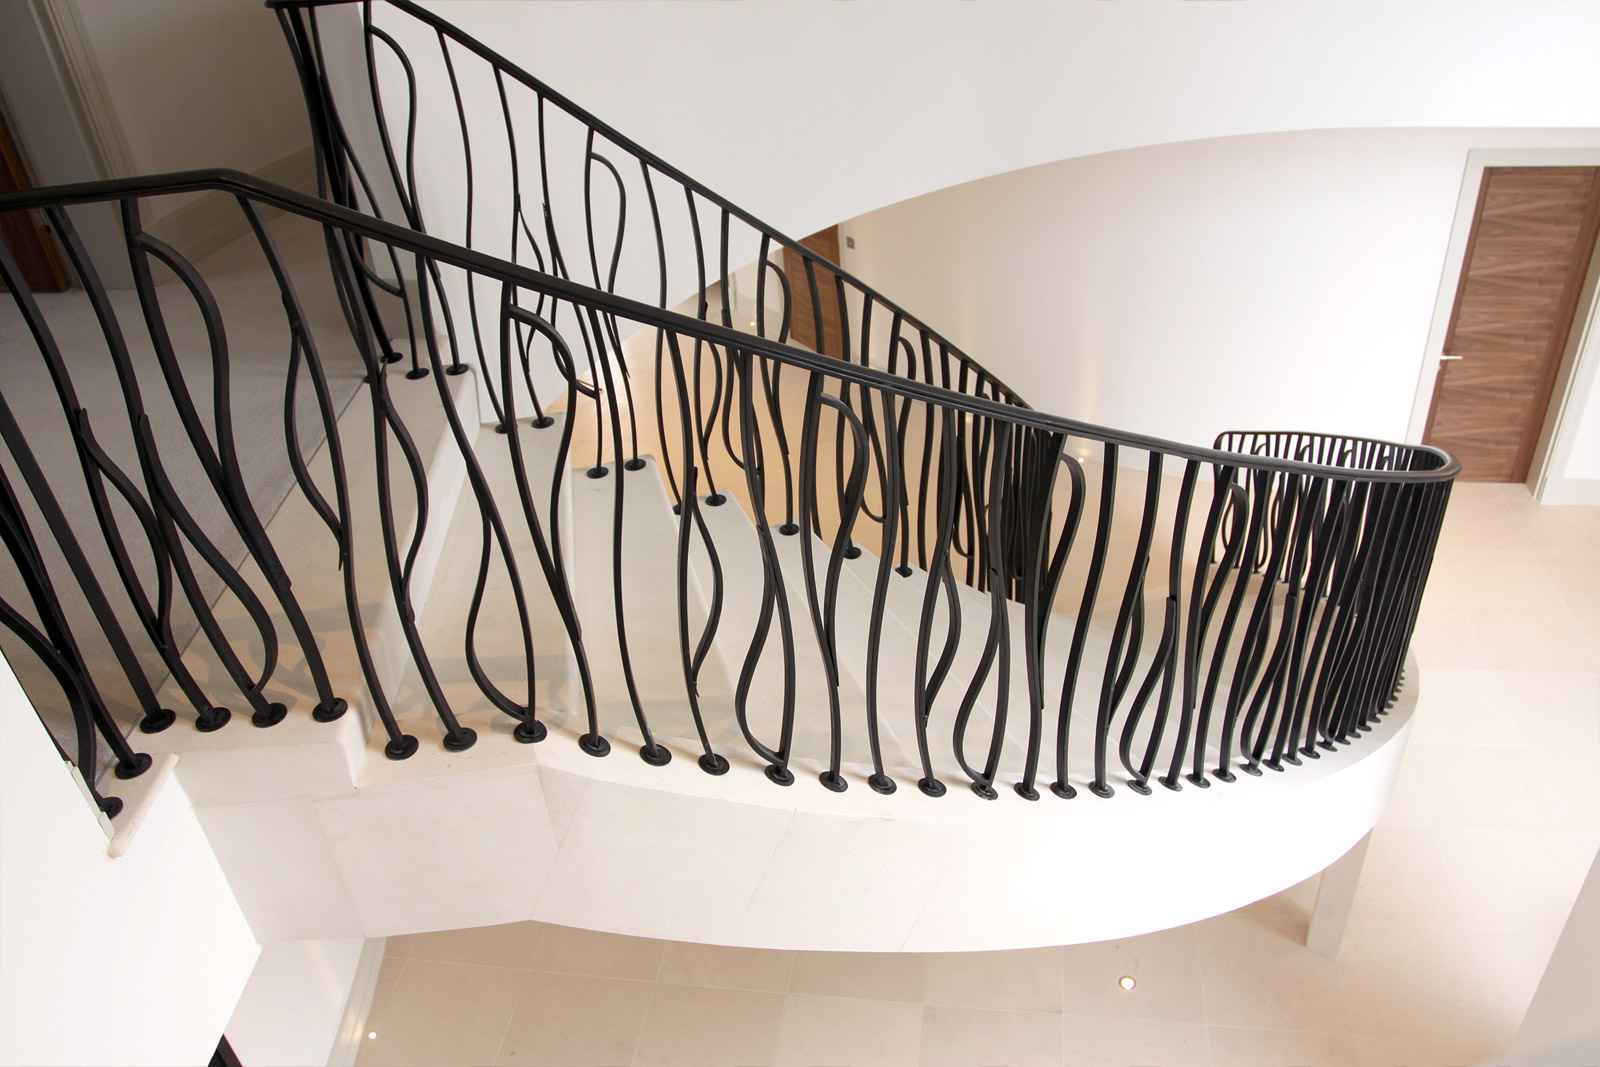 10. Moleanos stone flying staircase with striking metal balustrade and handrail